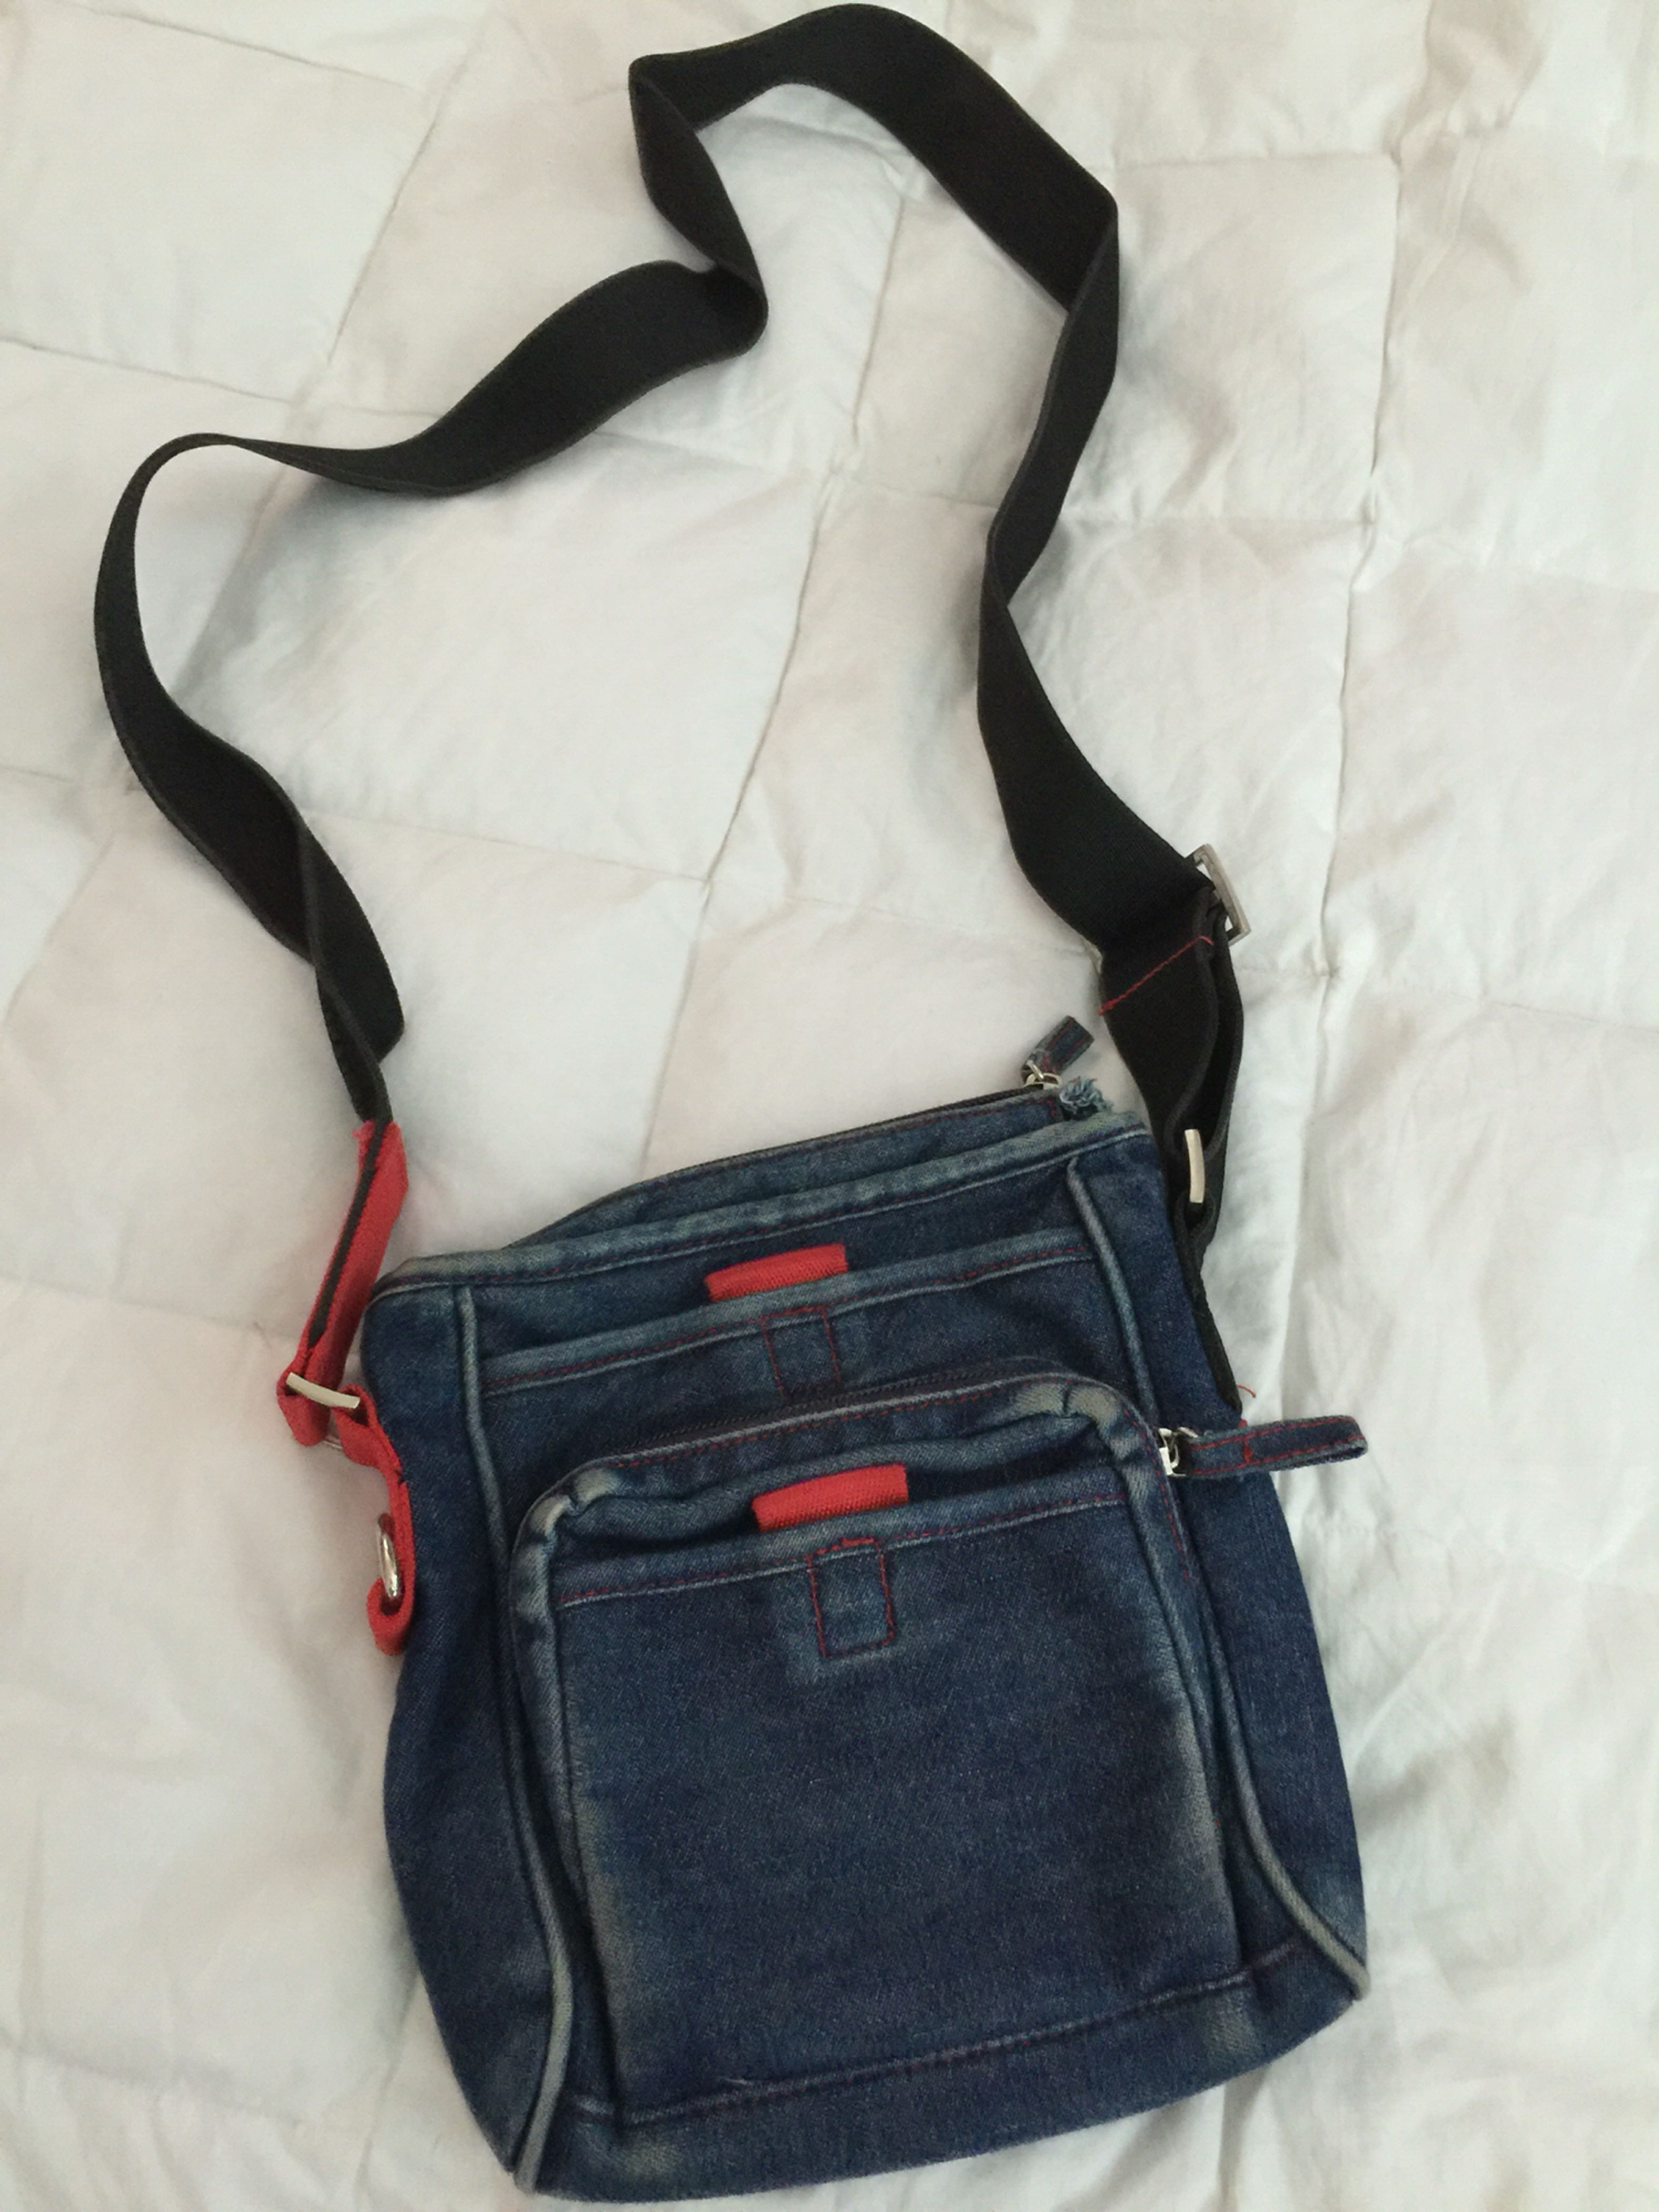 Macys Charter Club Crossover Bag purse Jean Material - Rarely used - Just sitting collecting dust